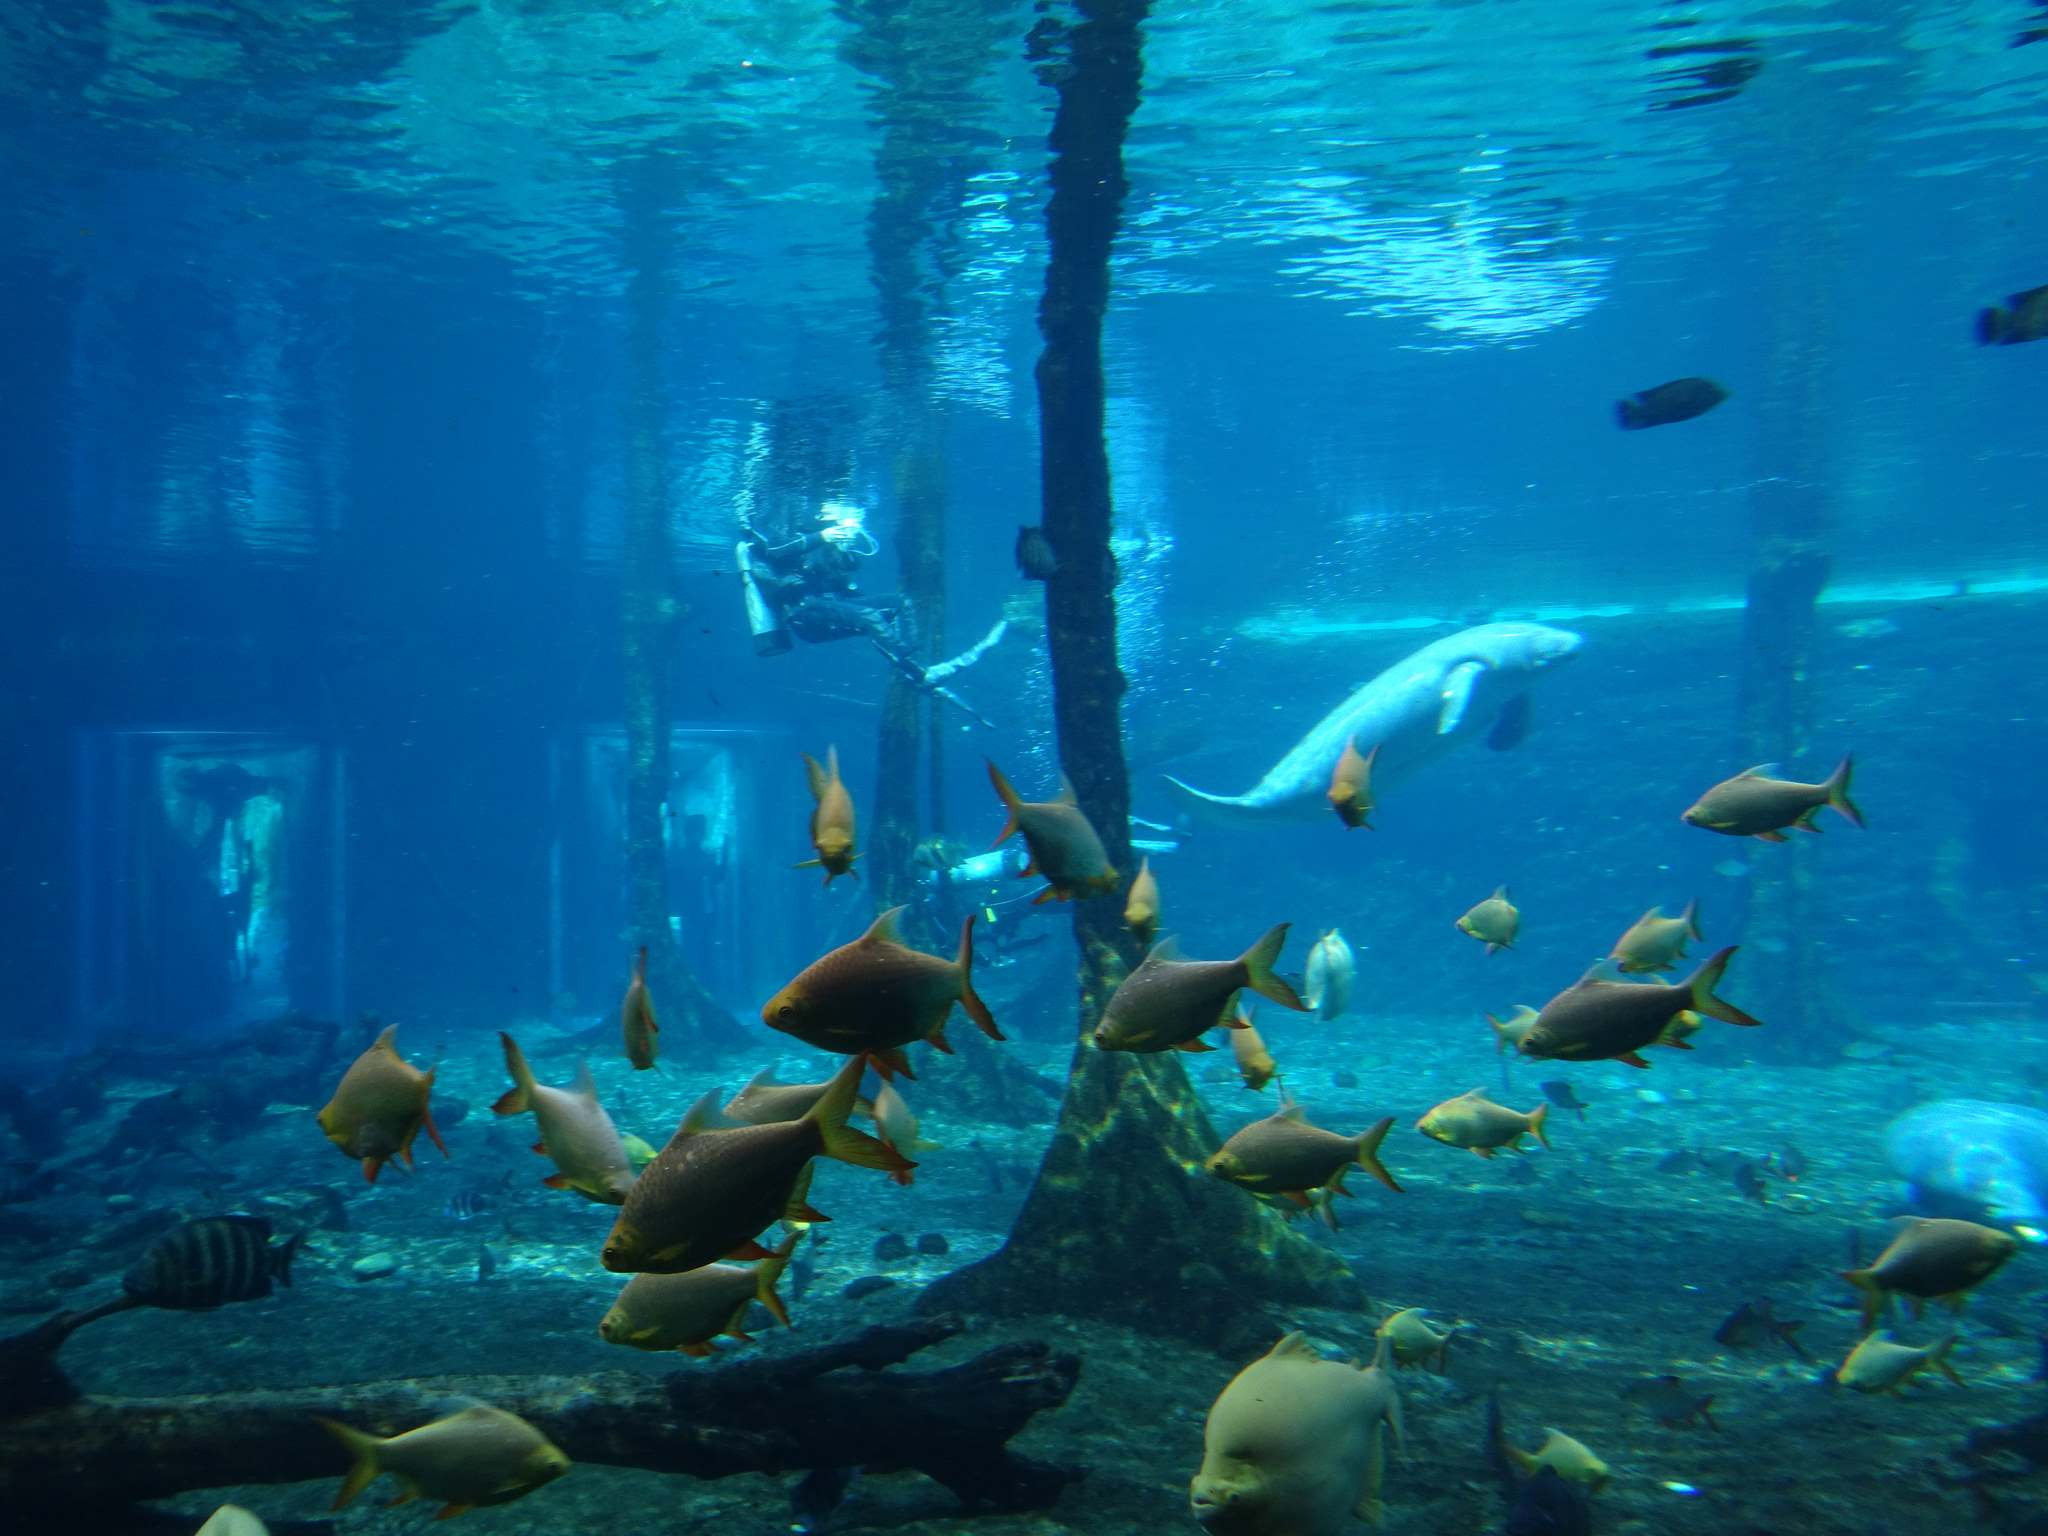 chimelong ocean kingdom12 Chimelong Ocean Kingdom   Worlds Largest Aquarium